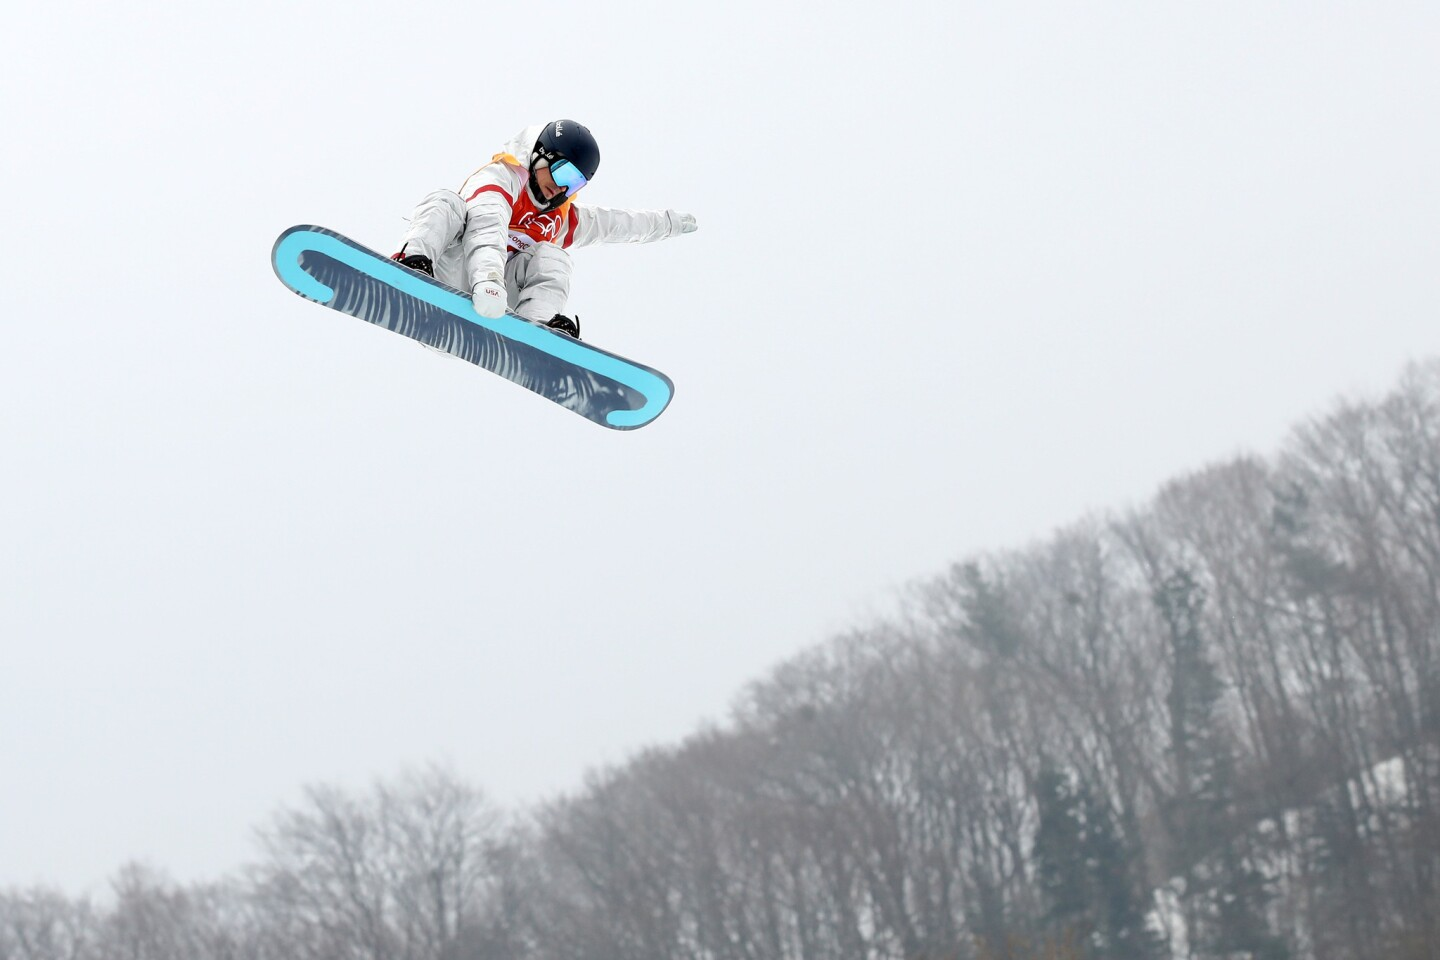 PYEONGCHANG-GUN, SOUTH KOREA - FEBRUARY 10: Ryan Stassel of the United States trains ahead of the Men's Slopestyle qualification on day one of the PyeongChang 2018 Winter Olympic Games at Phoenix Snow Park on February 10, 2018 in Pyeongchang-gun, South Korea. (Photo by Cameron Spencer/Getty Images) ** OUTS - ELSENT, FPG, CM - OUTS * NM, PH, VA if sourced by CT, LA or MoD **